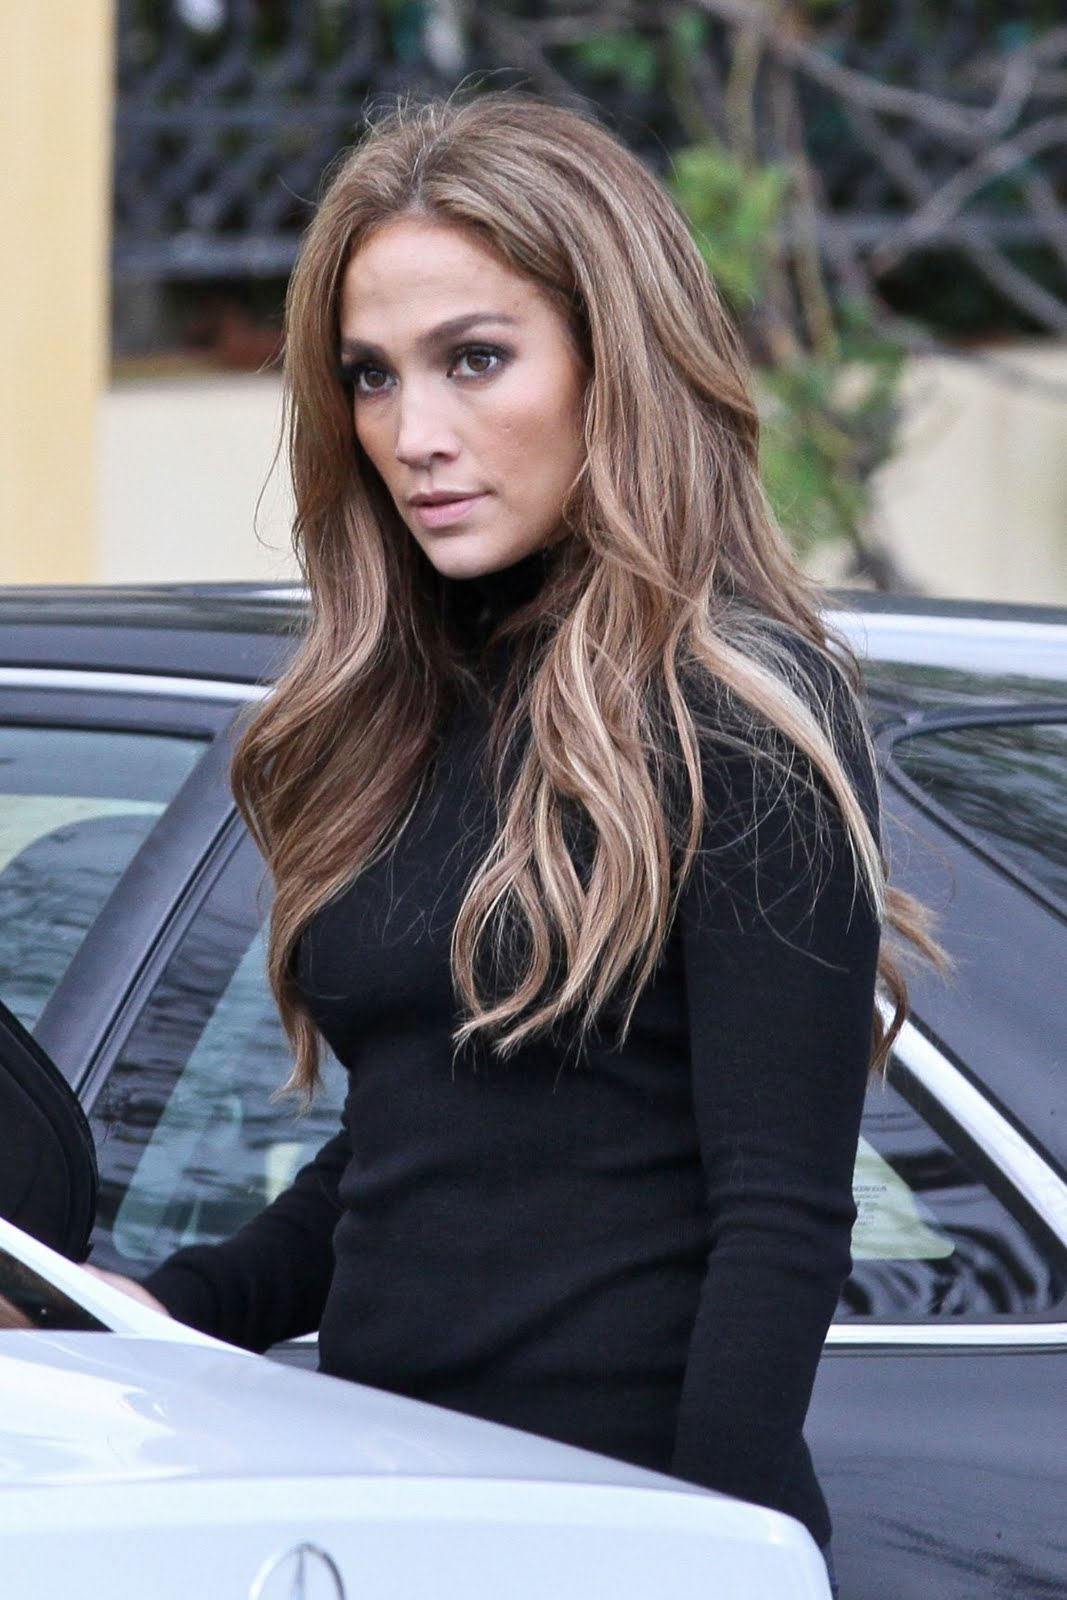 Fashion Store And Models Jennifer Lopez Hot Sey Celebrity Singer